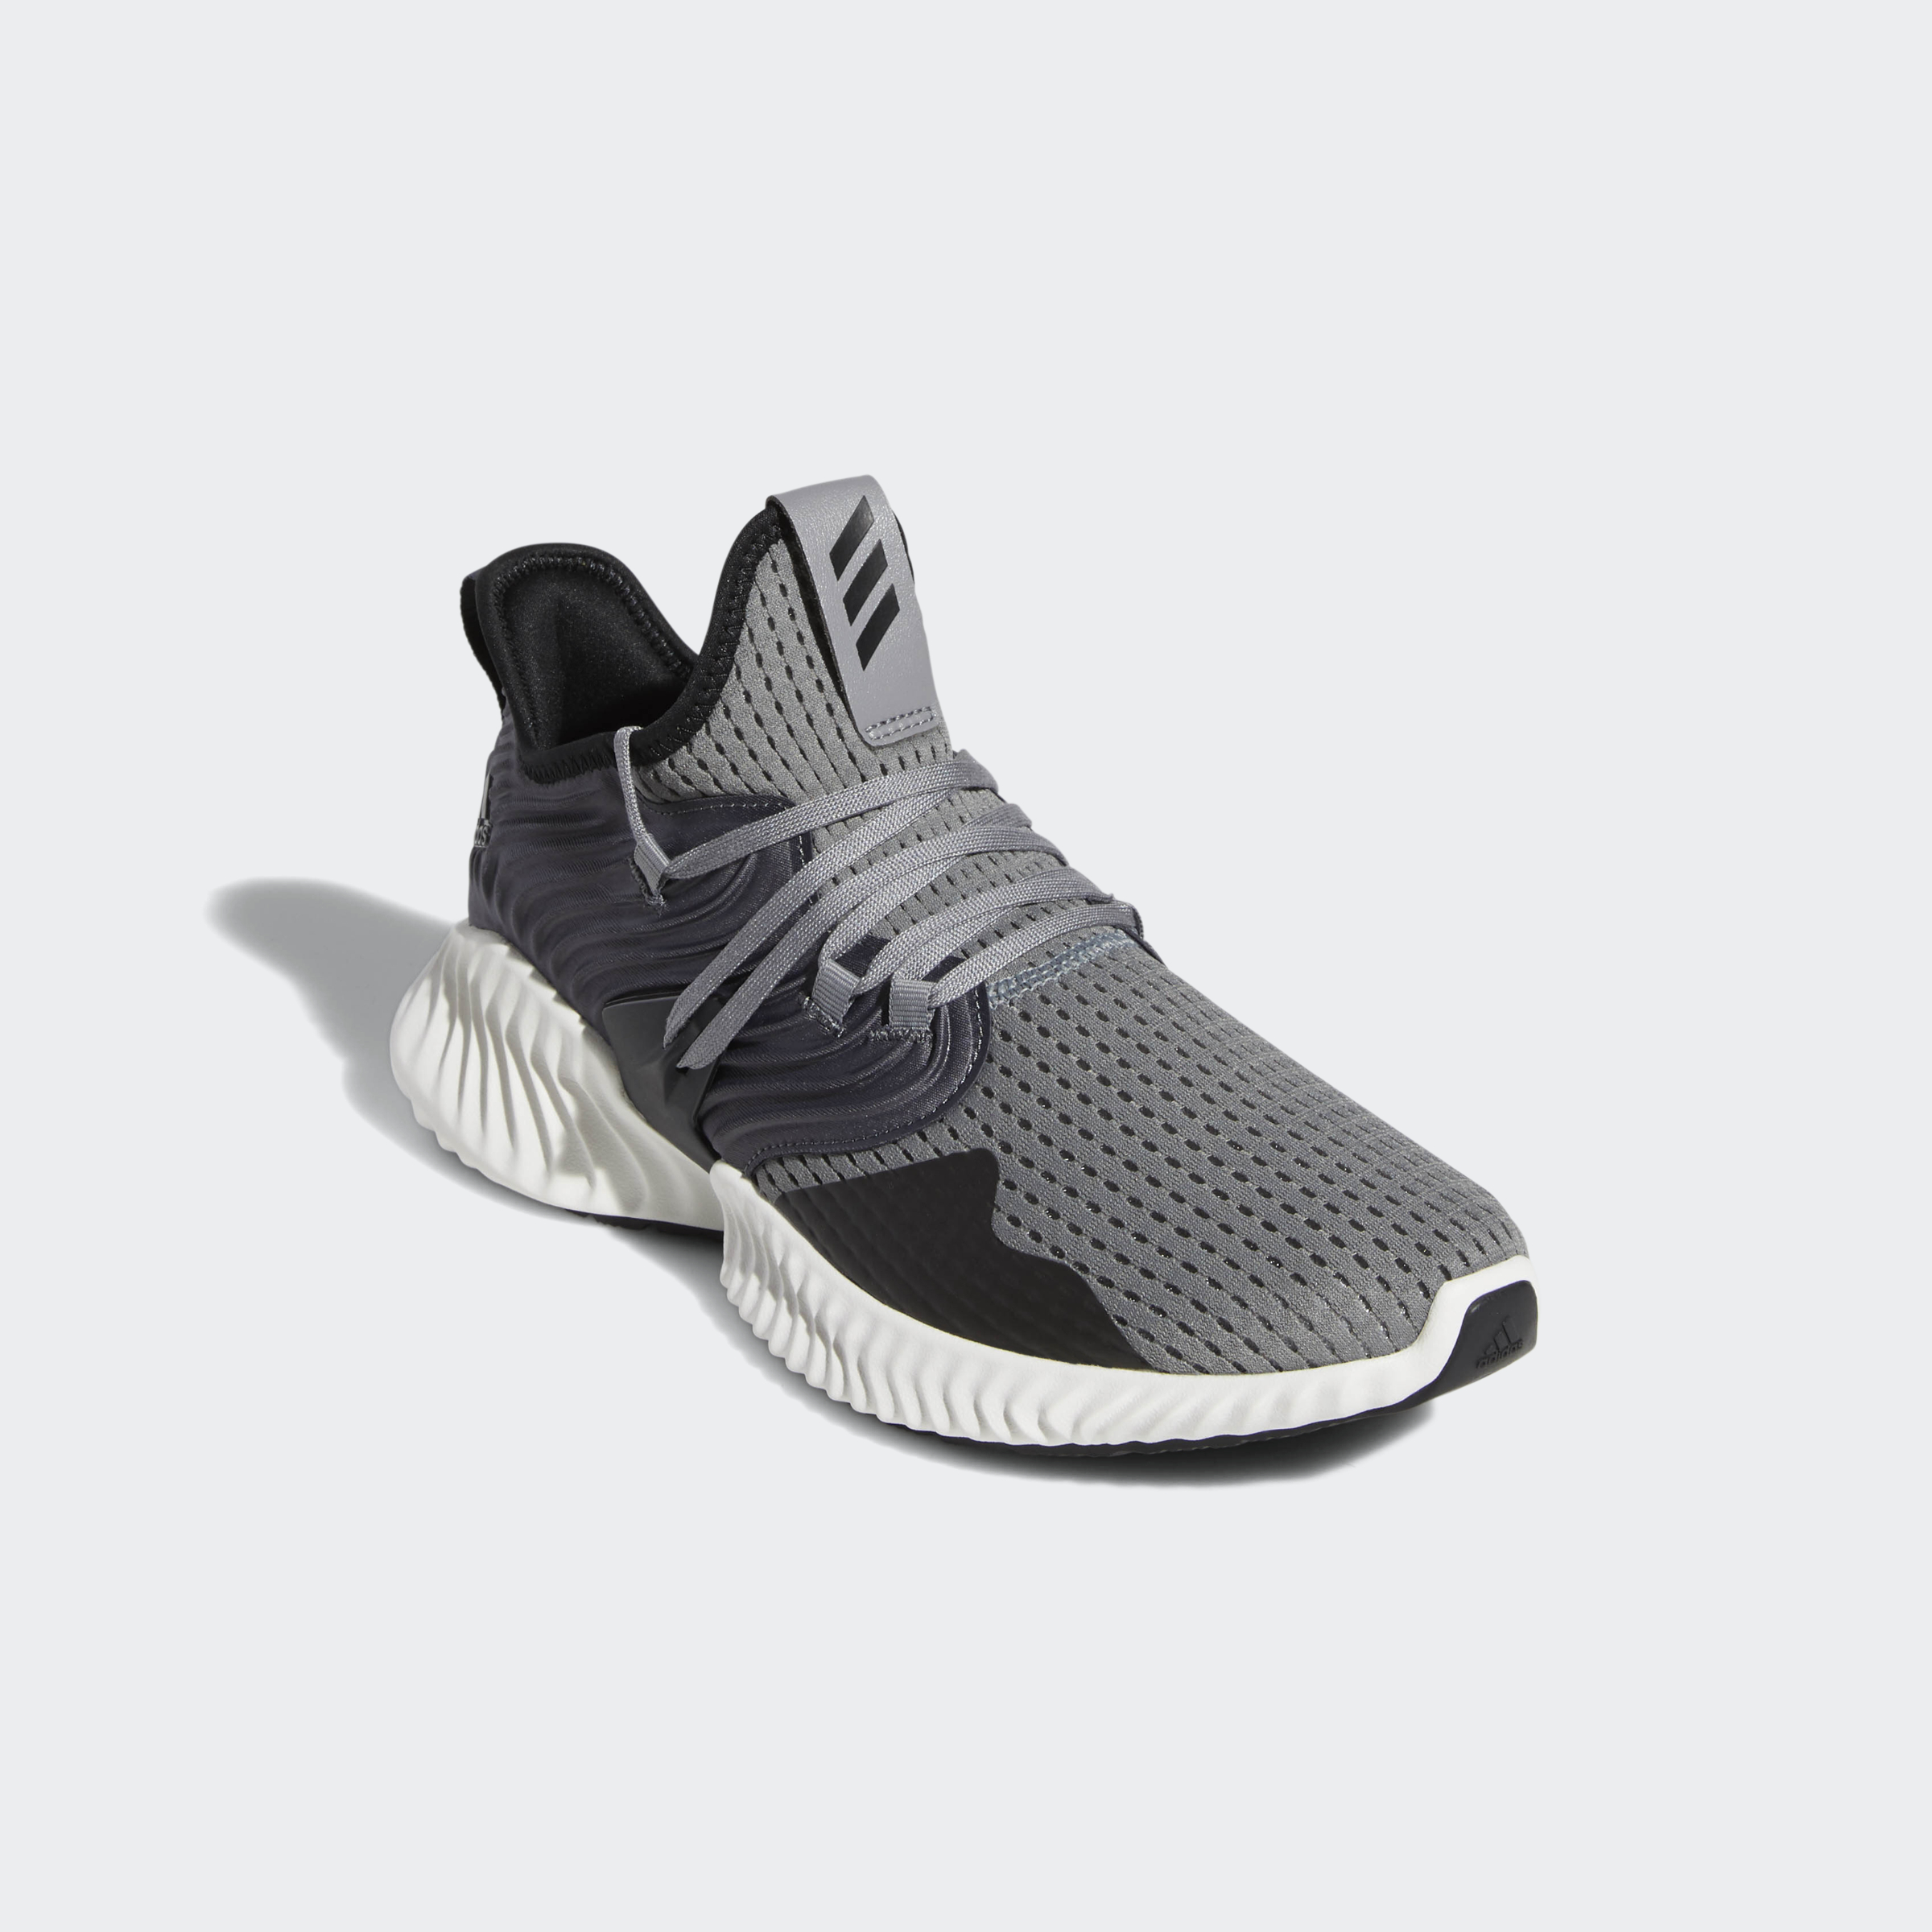 adidas-Alphabounce-Instinct-Clima-Shoes-Men-039-s-Athletic-amp-Sneakers thumbnail 18